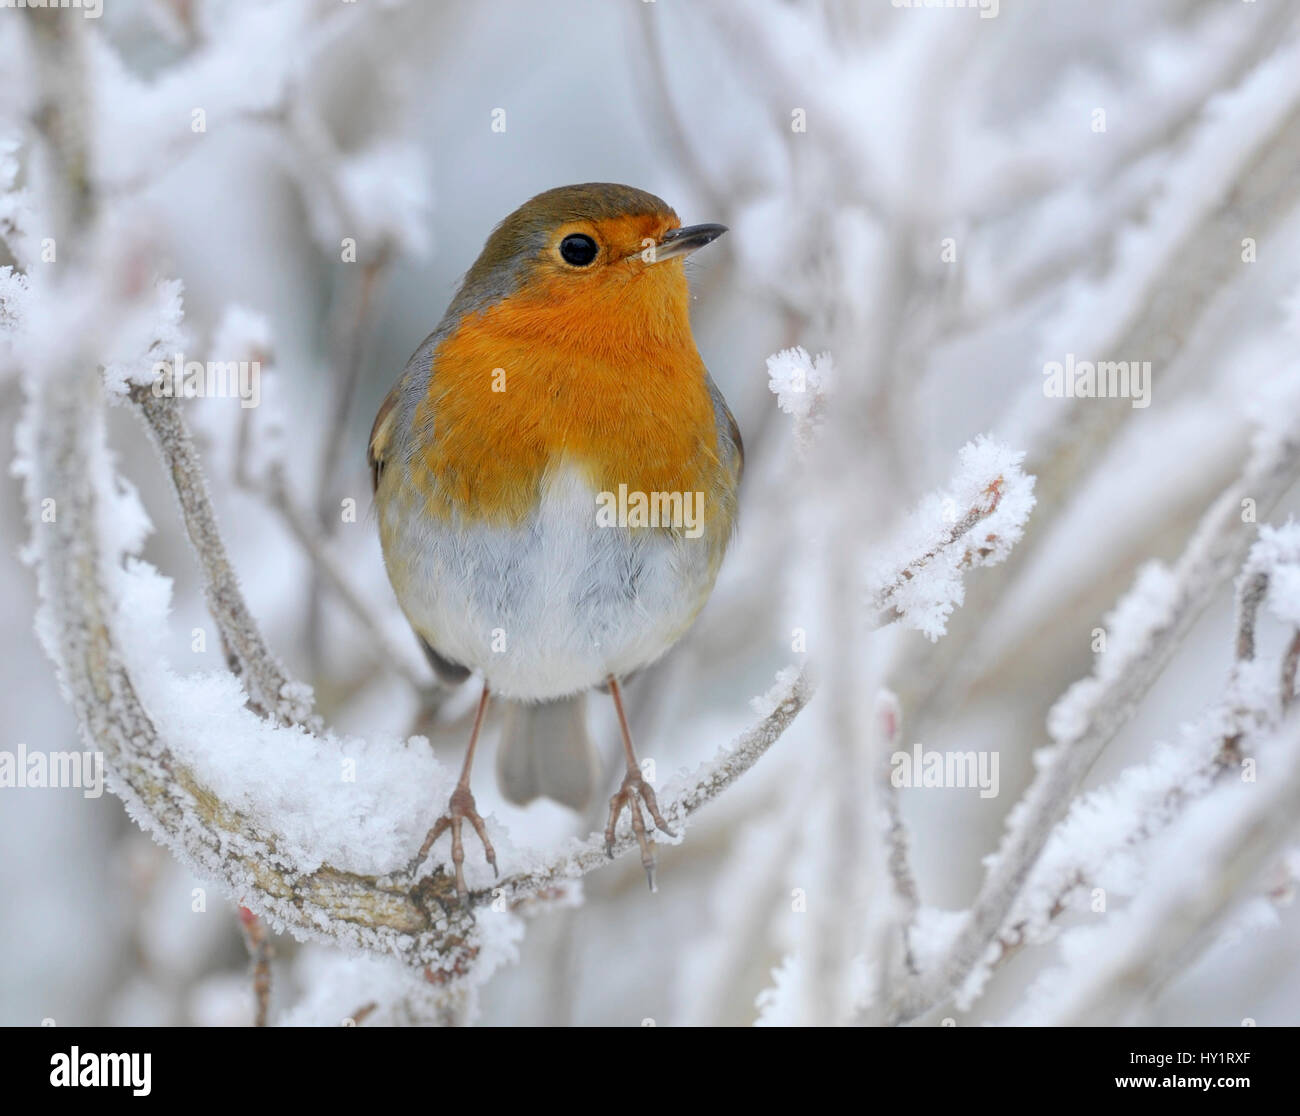 European Robin (Erithacus rubecula) perched in snow, Wales, UK, January. - Stock Image